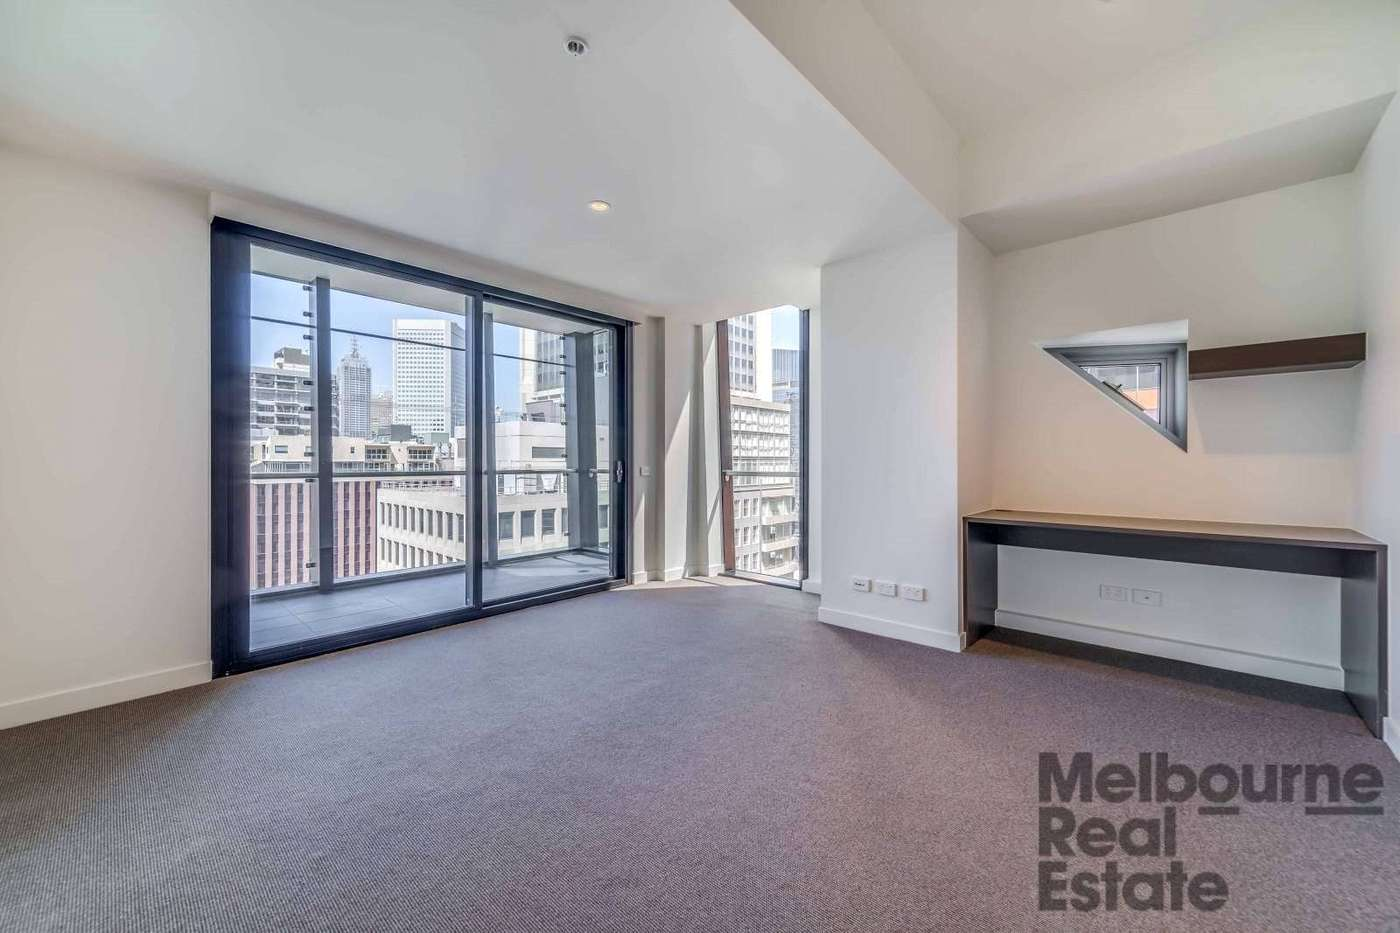 Main view of Homely apartment listing, 1223/199 William Street, Melbourne, VIC 3000